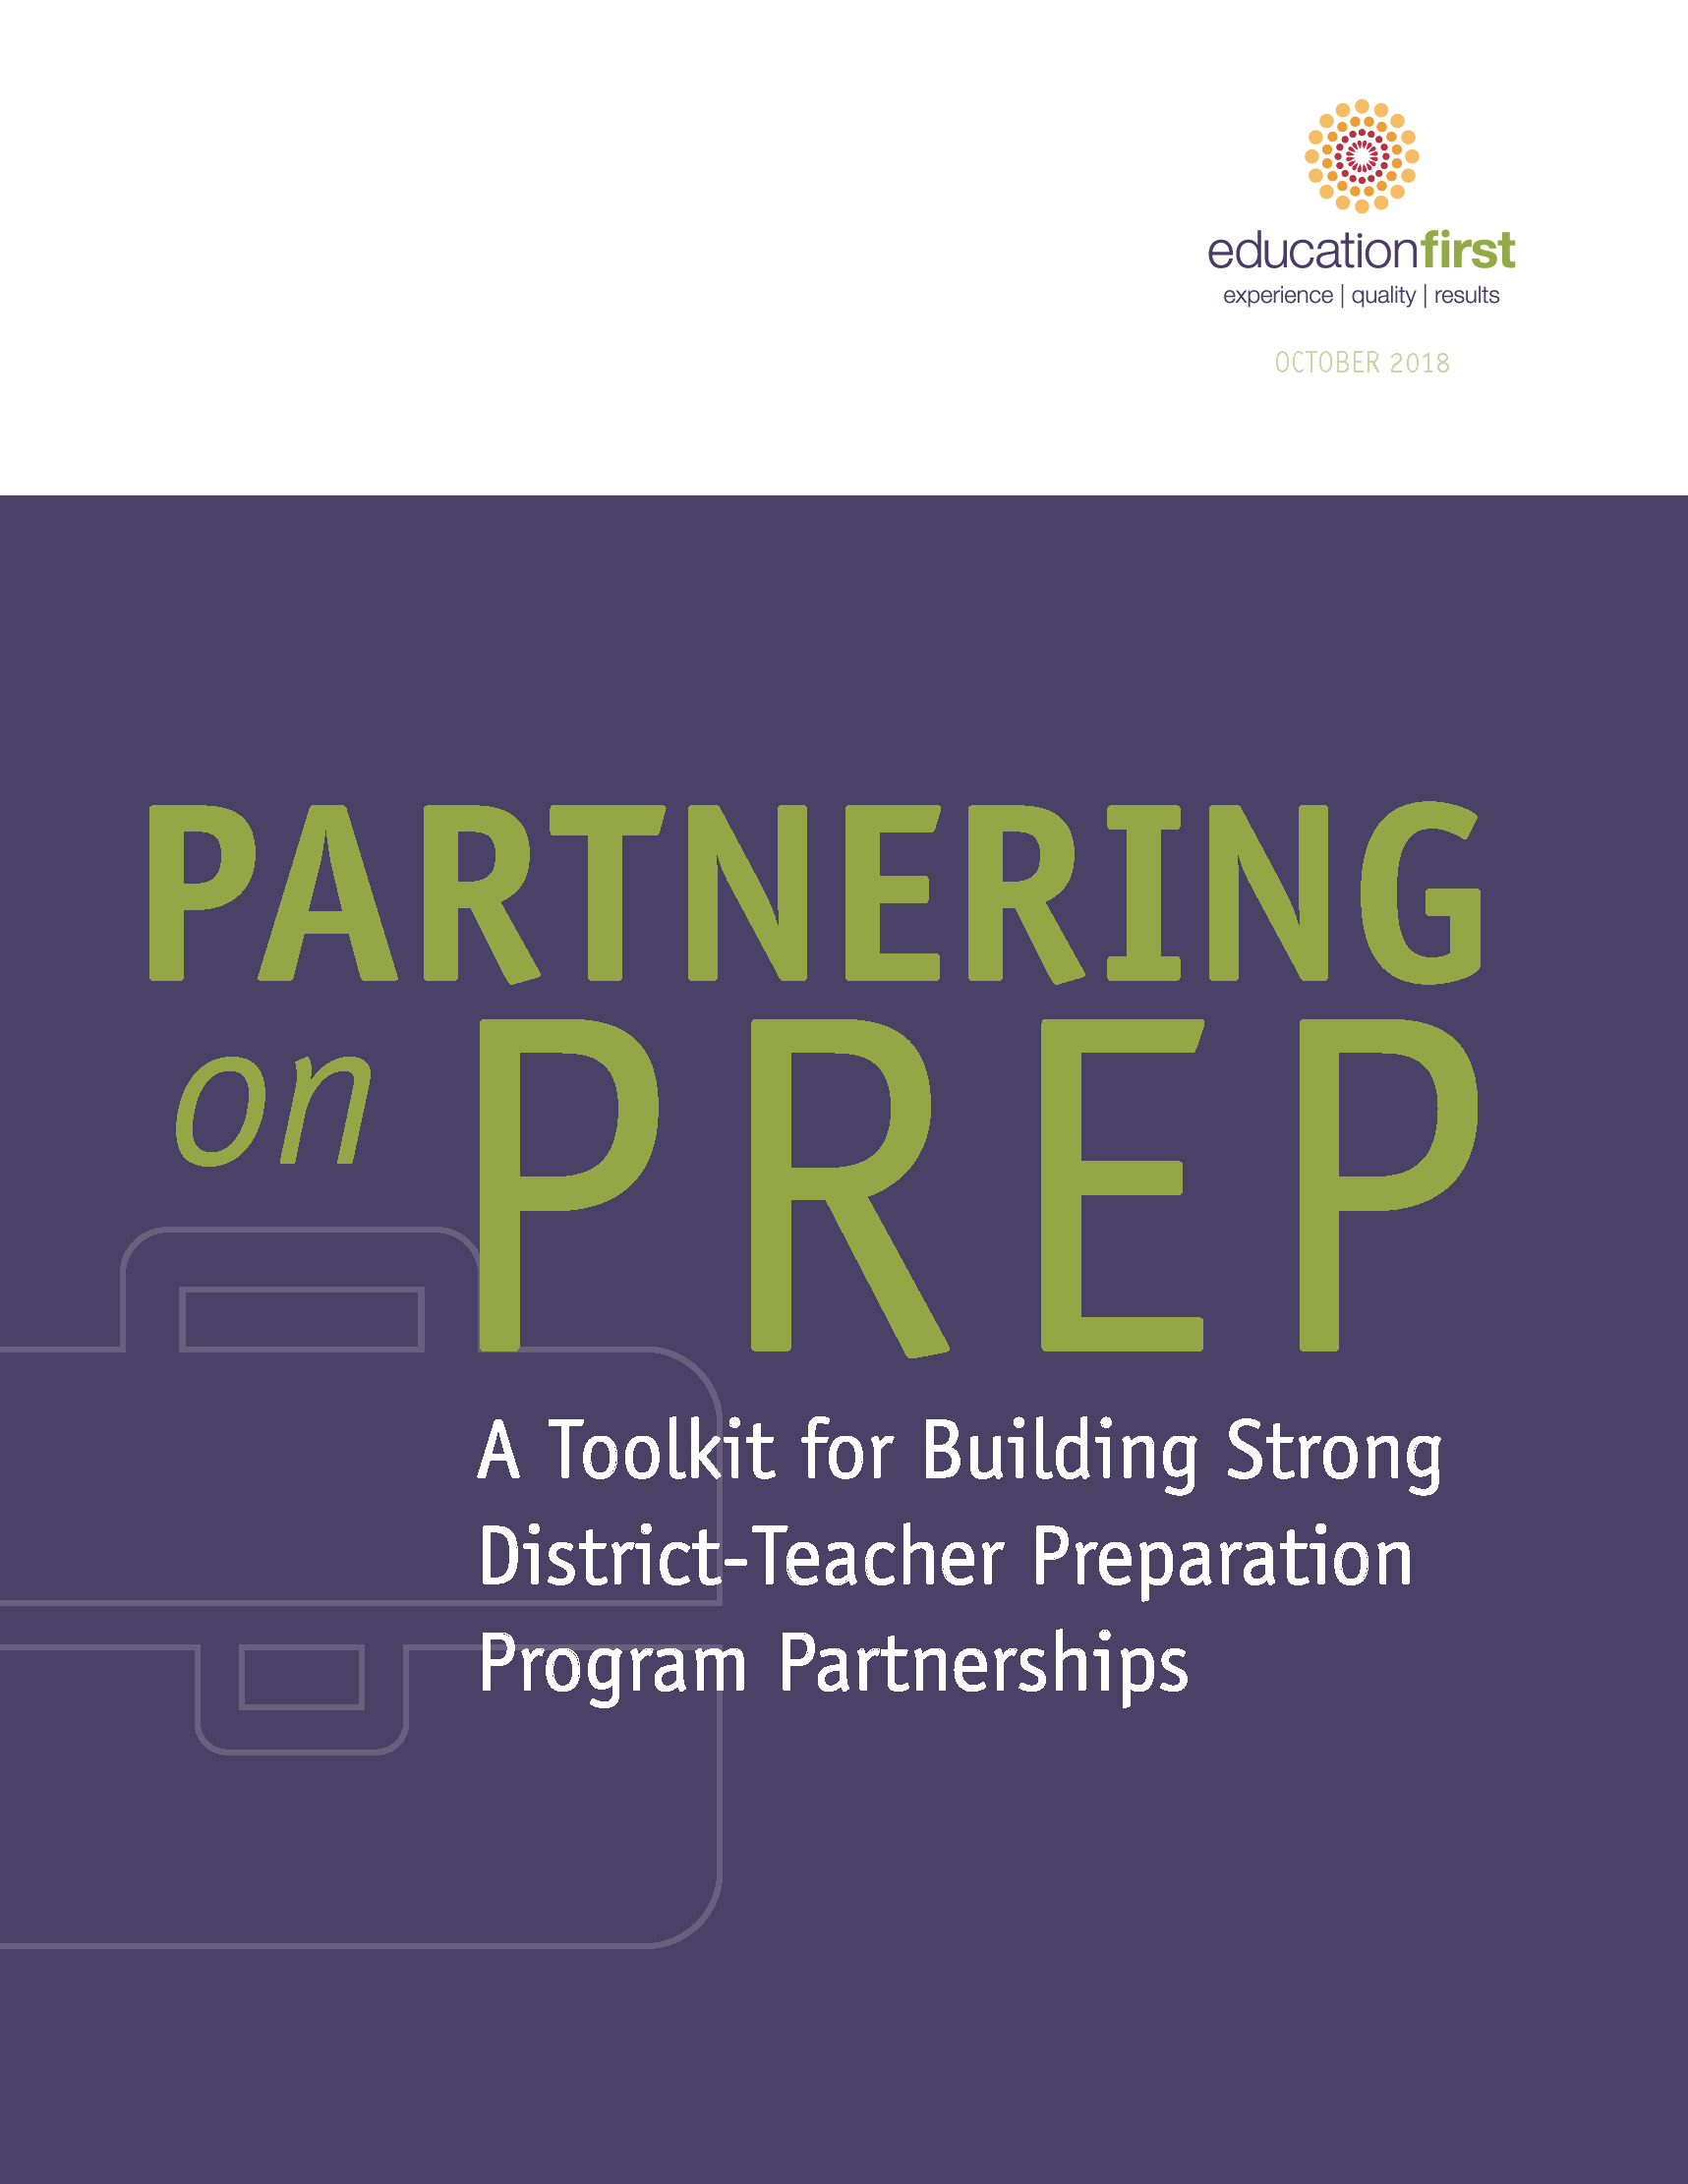 Partnering on Prep